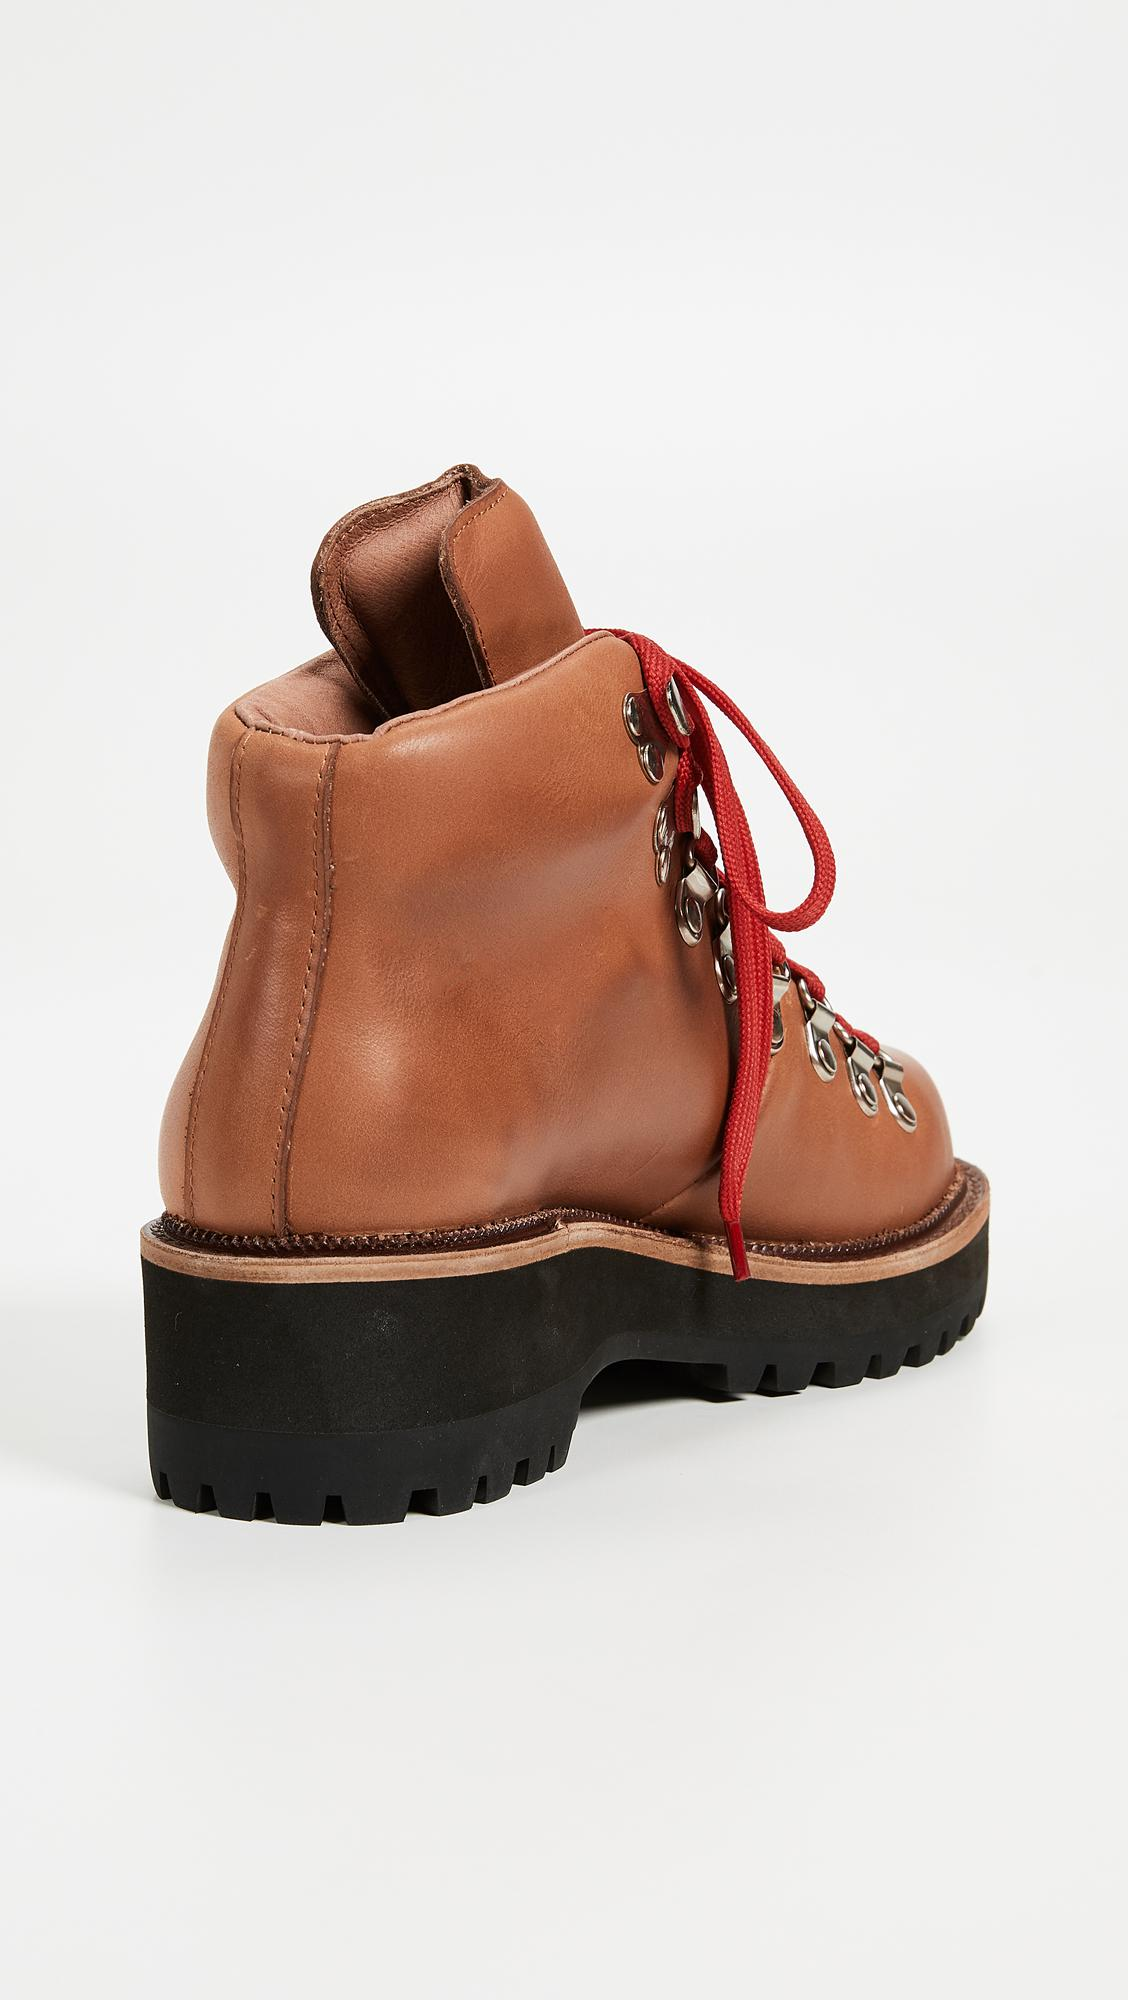 Jeffrey Campbell Leather Explorer Wedge Hiking Booties Lyst